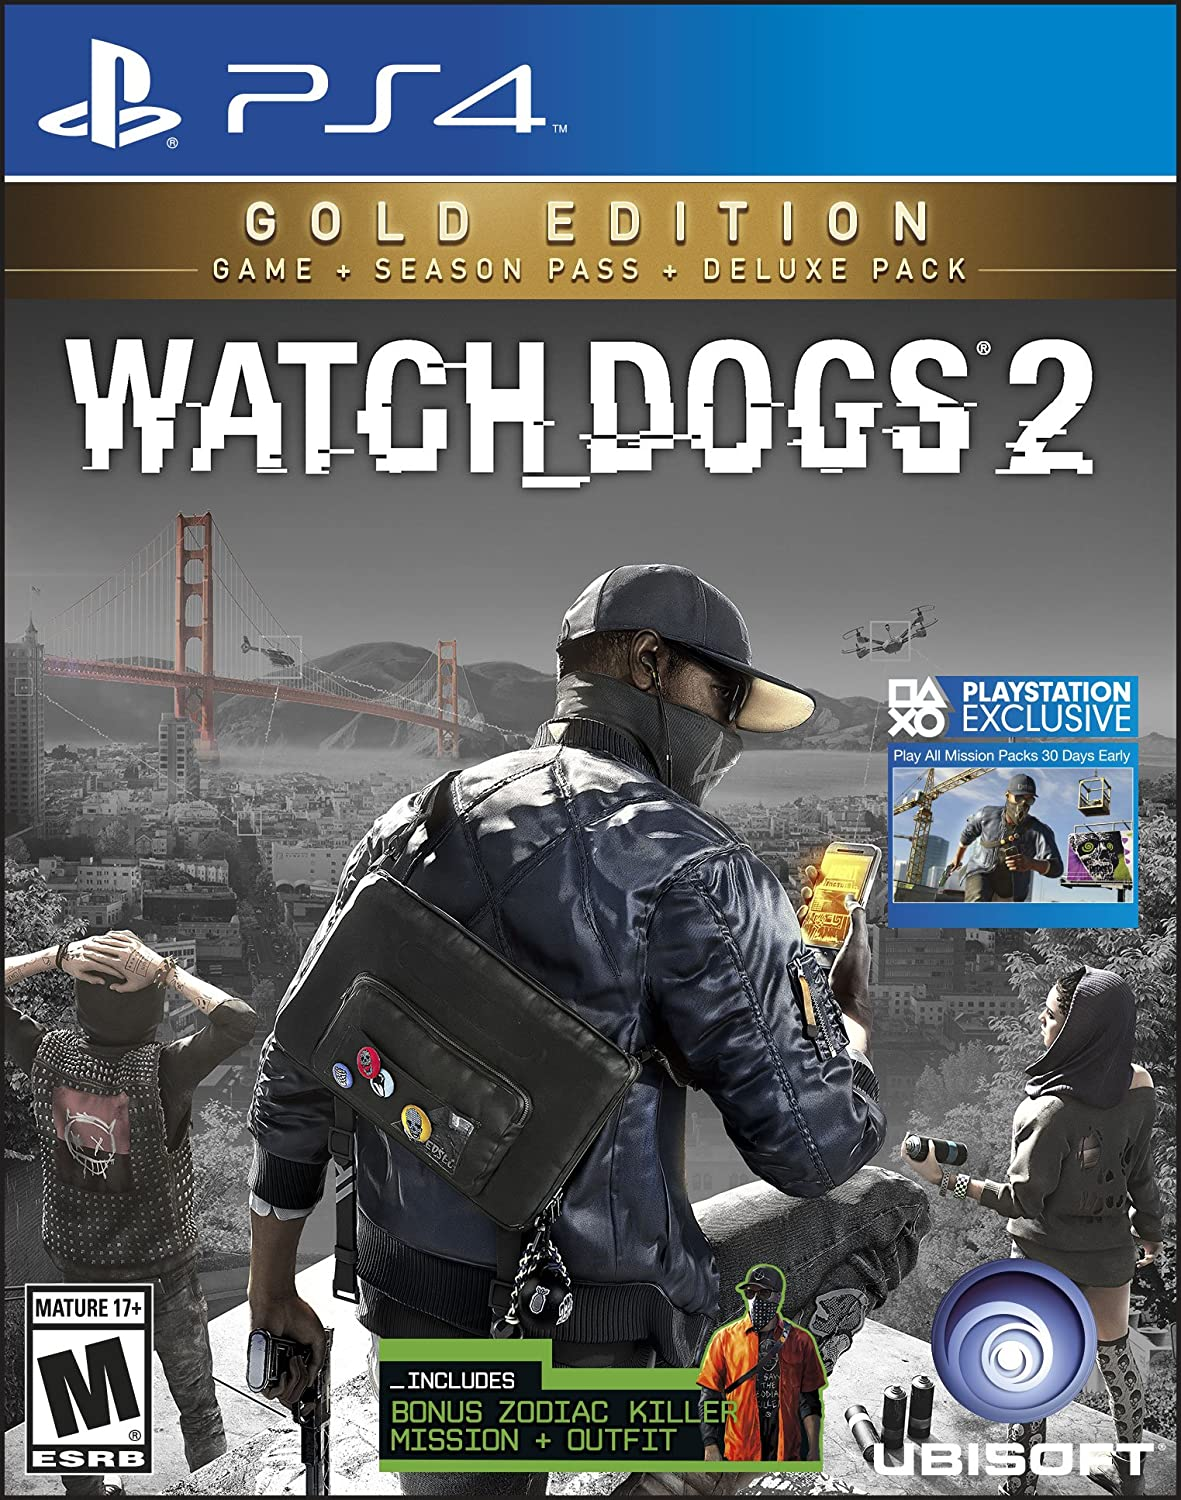 Watch Dogs 2 Gold Edition Includes Extra Content Sony Playstation Ps4 Mass Effect Andromeda R3 Season Pass Subscription 4 Ubisoft Video Games